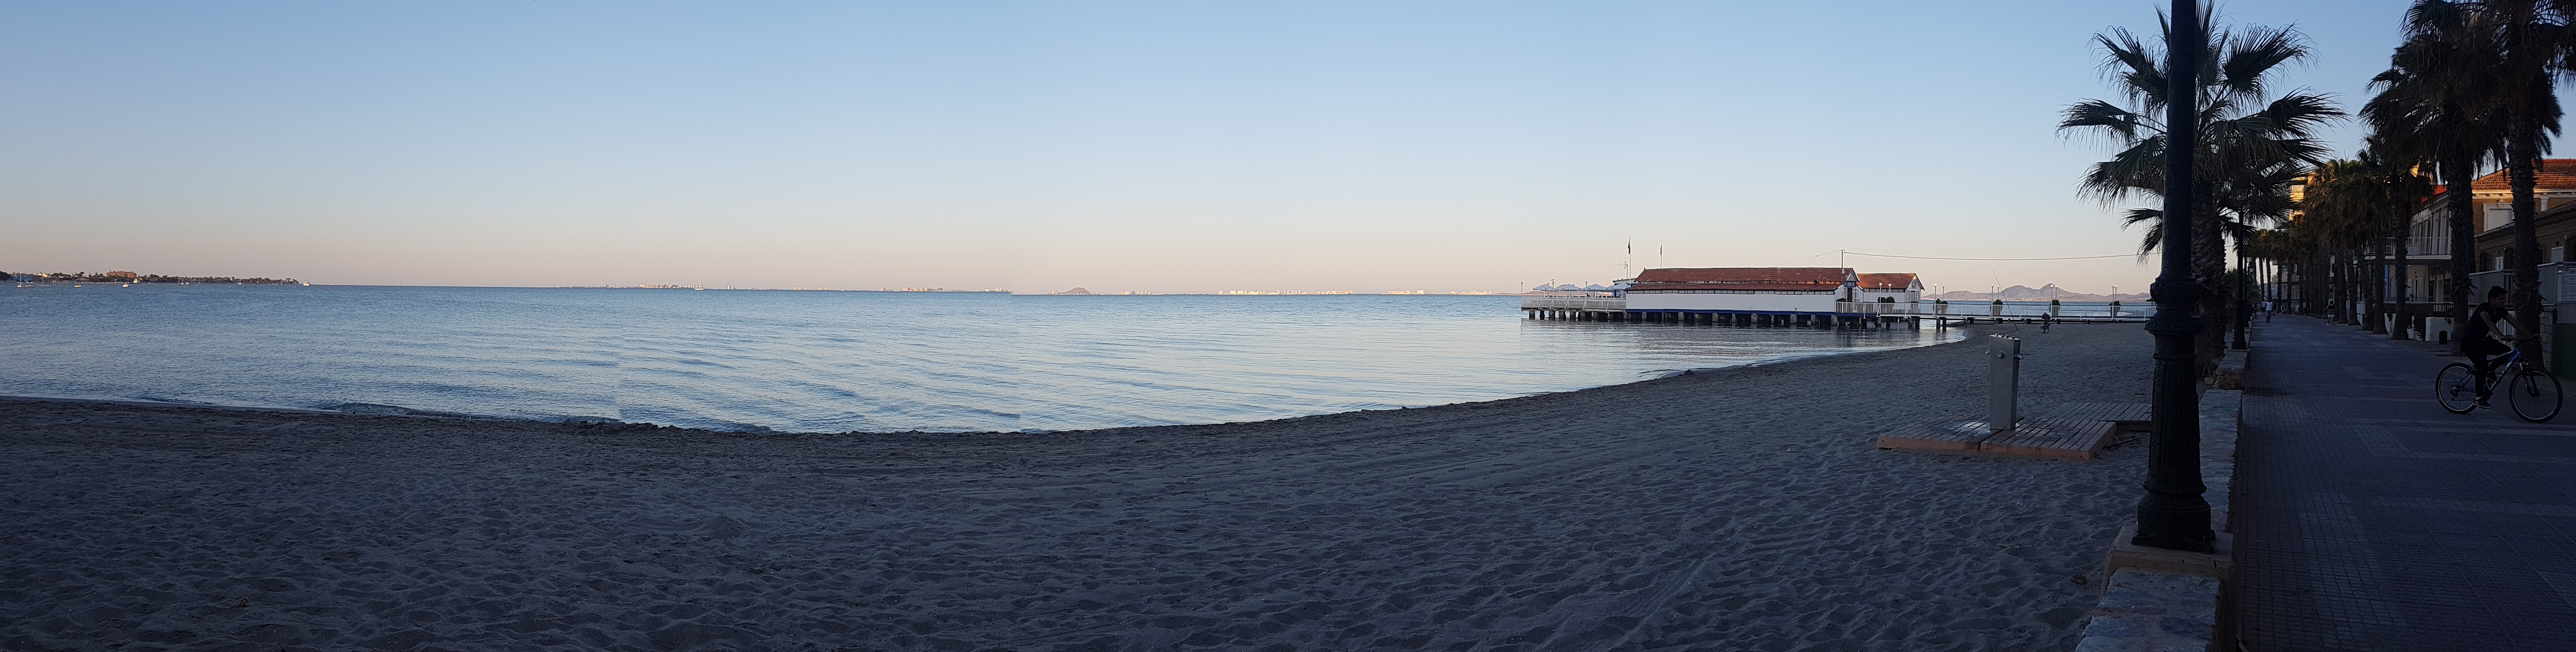 Mar Menor